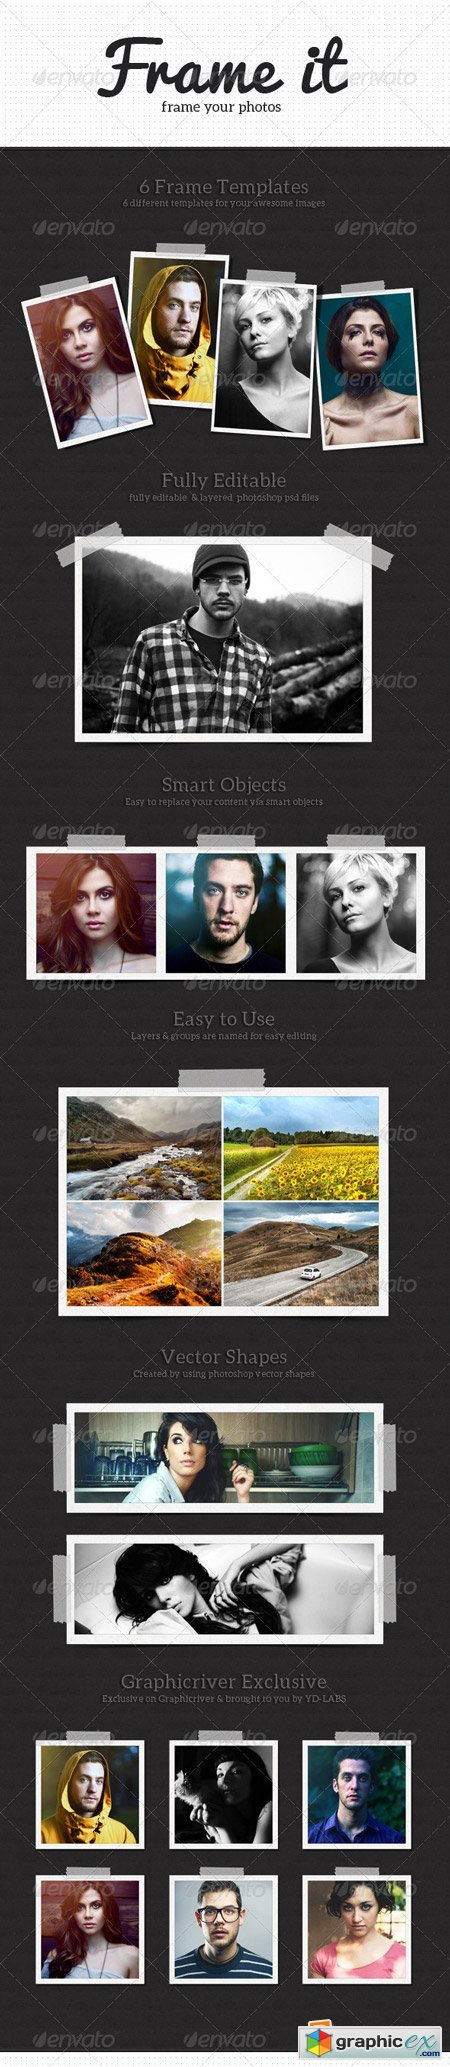 Frame It Photo Templates 5245052